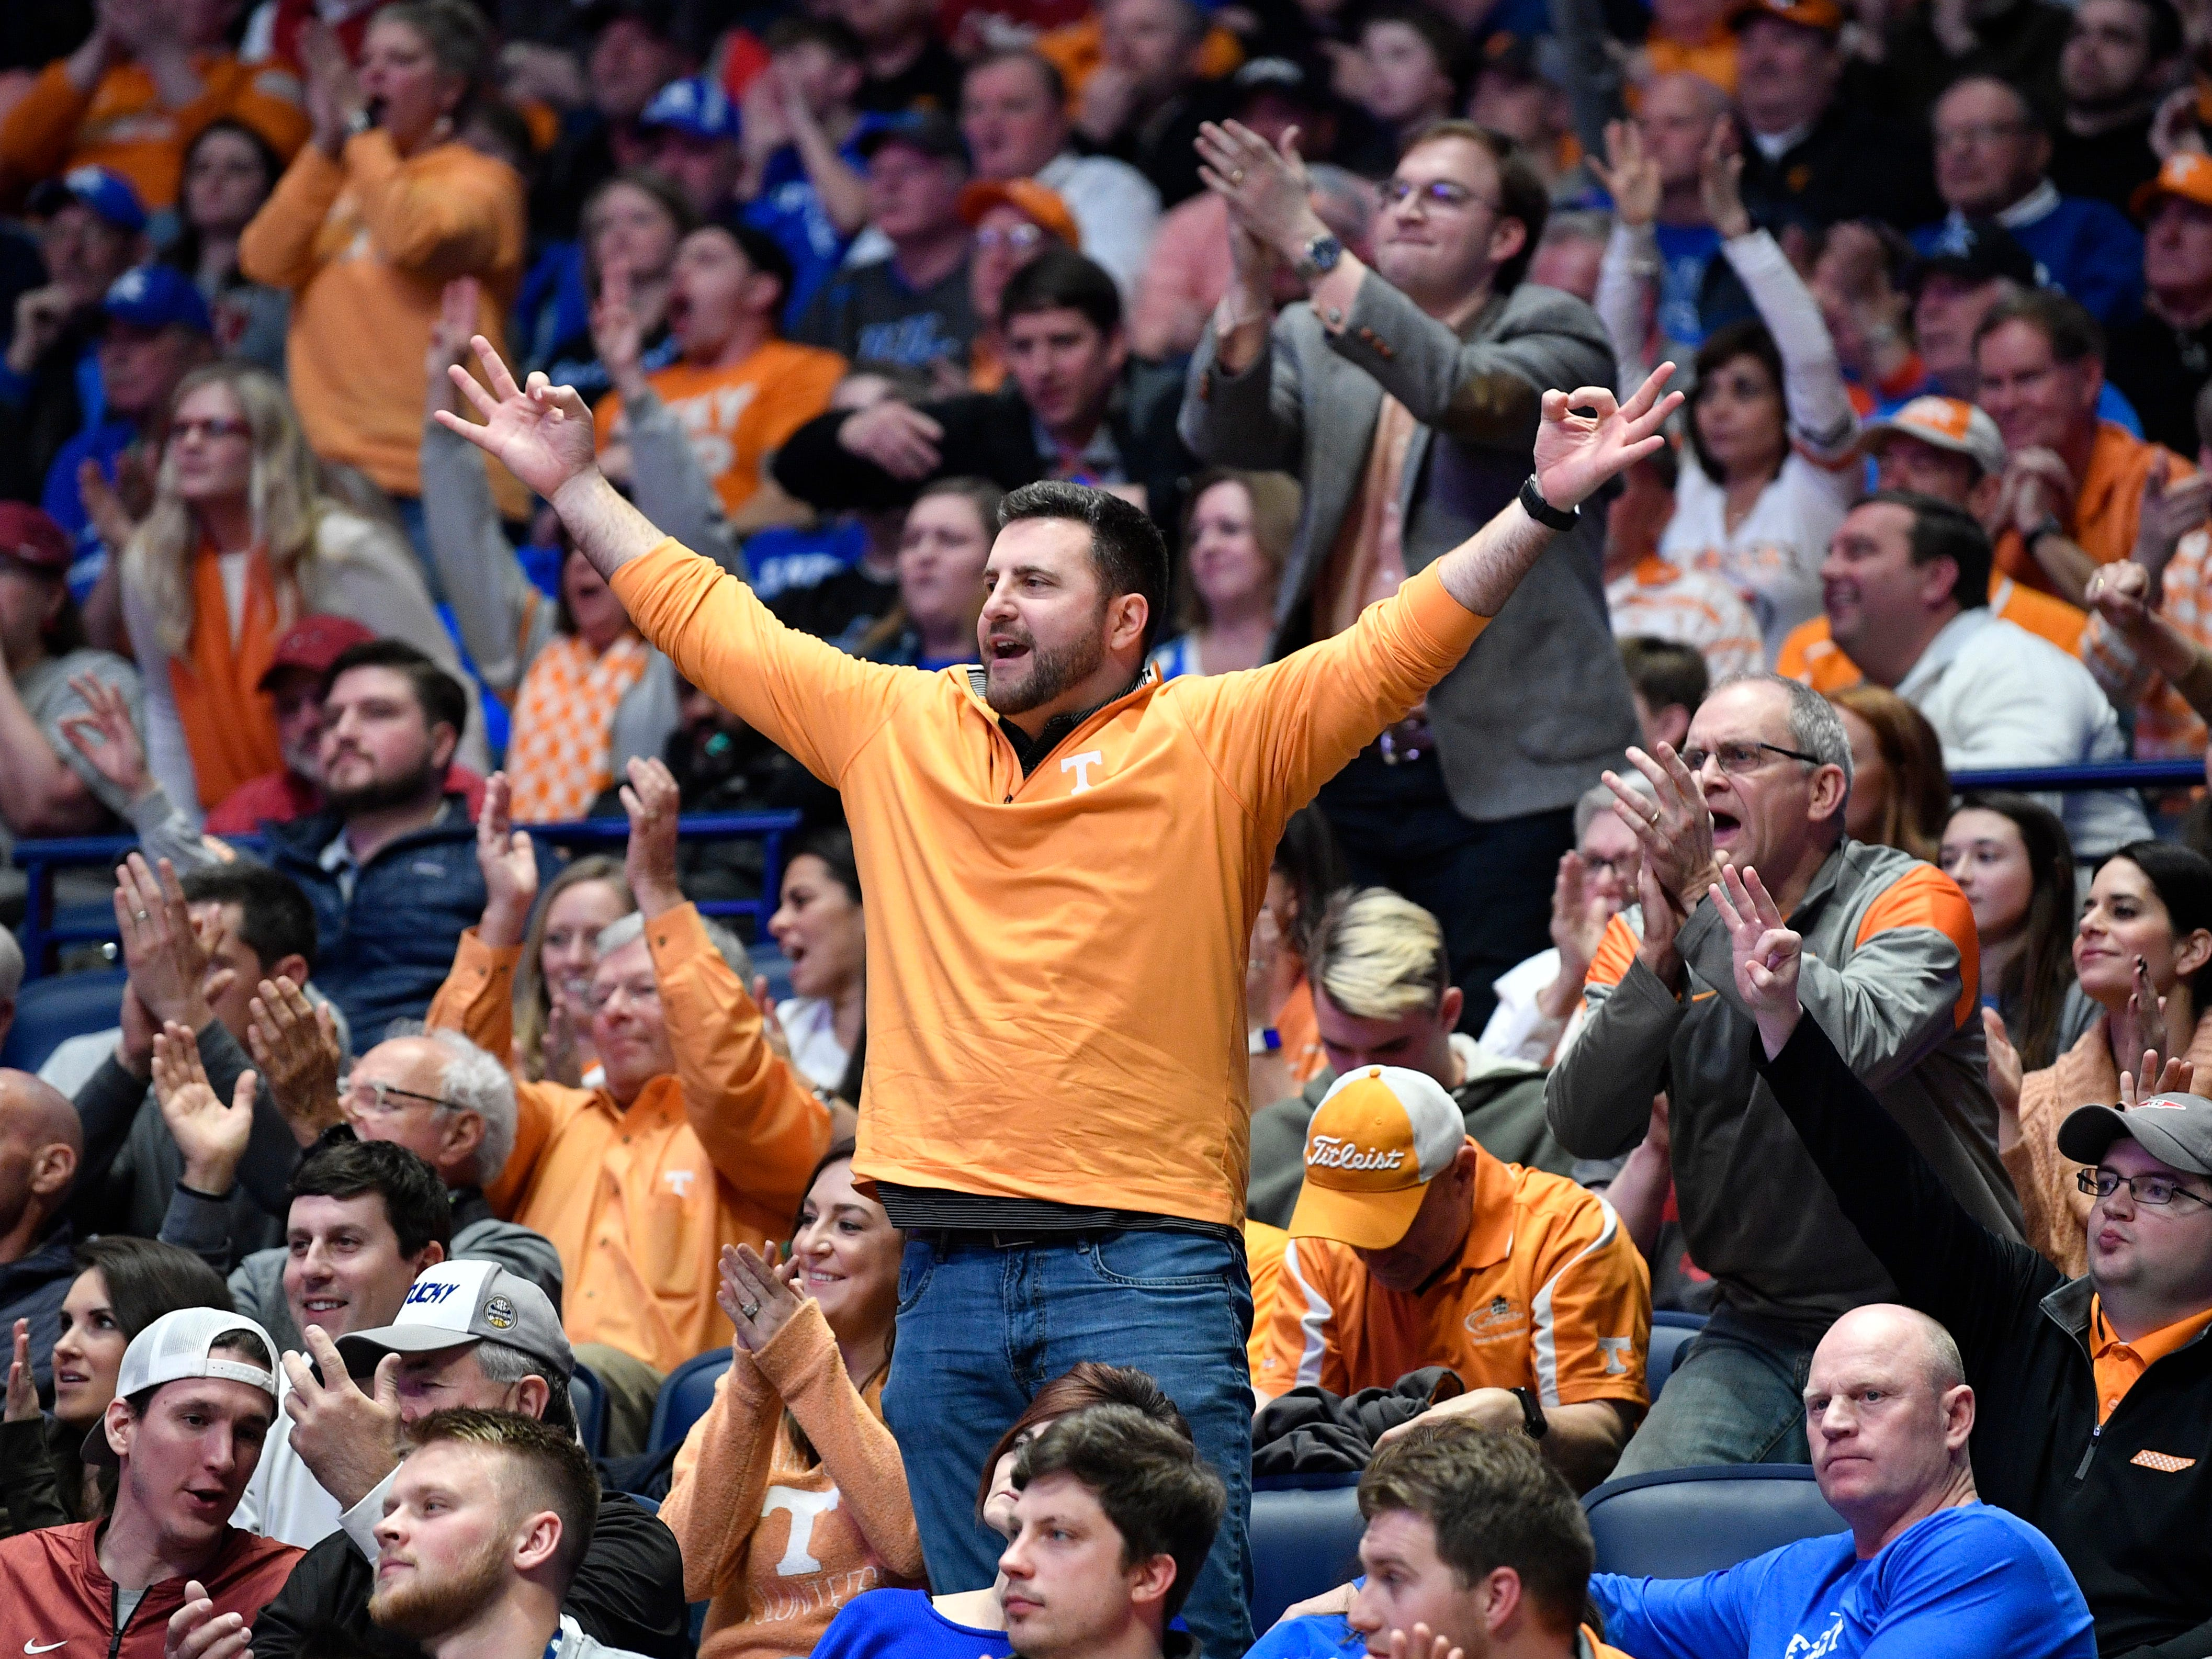 A UT fan cheers for the team against Mississippi State during the first half of their SEC Men's Basketball Tournament game at Bridgestone Arena in Nashville, Tenn., Friday, March 15, 2019.